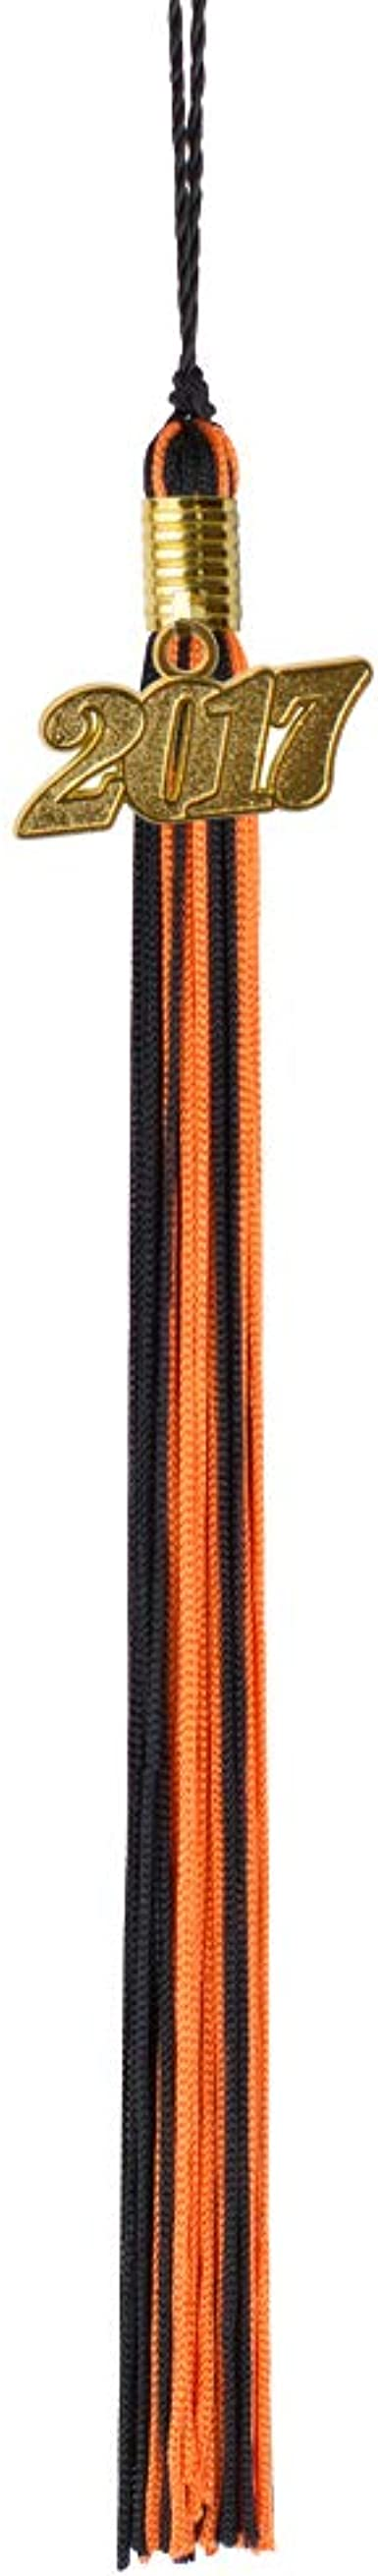 Graduation Tassels with Gold 2017 Year Charm Orange and Black